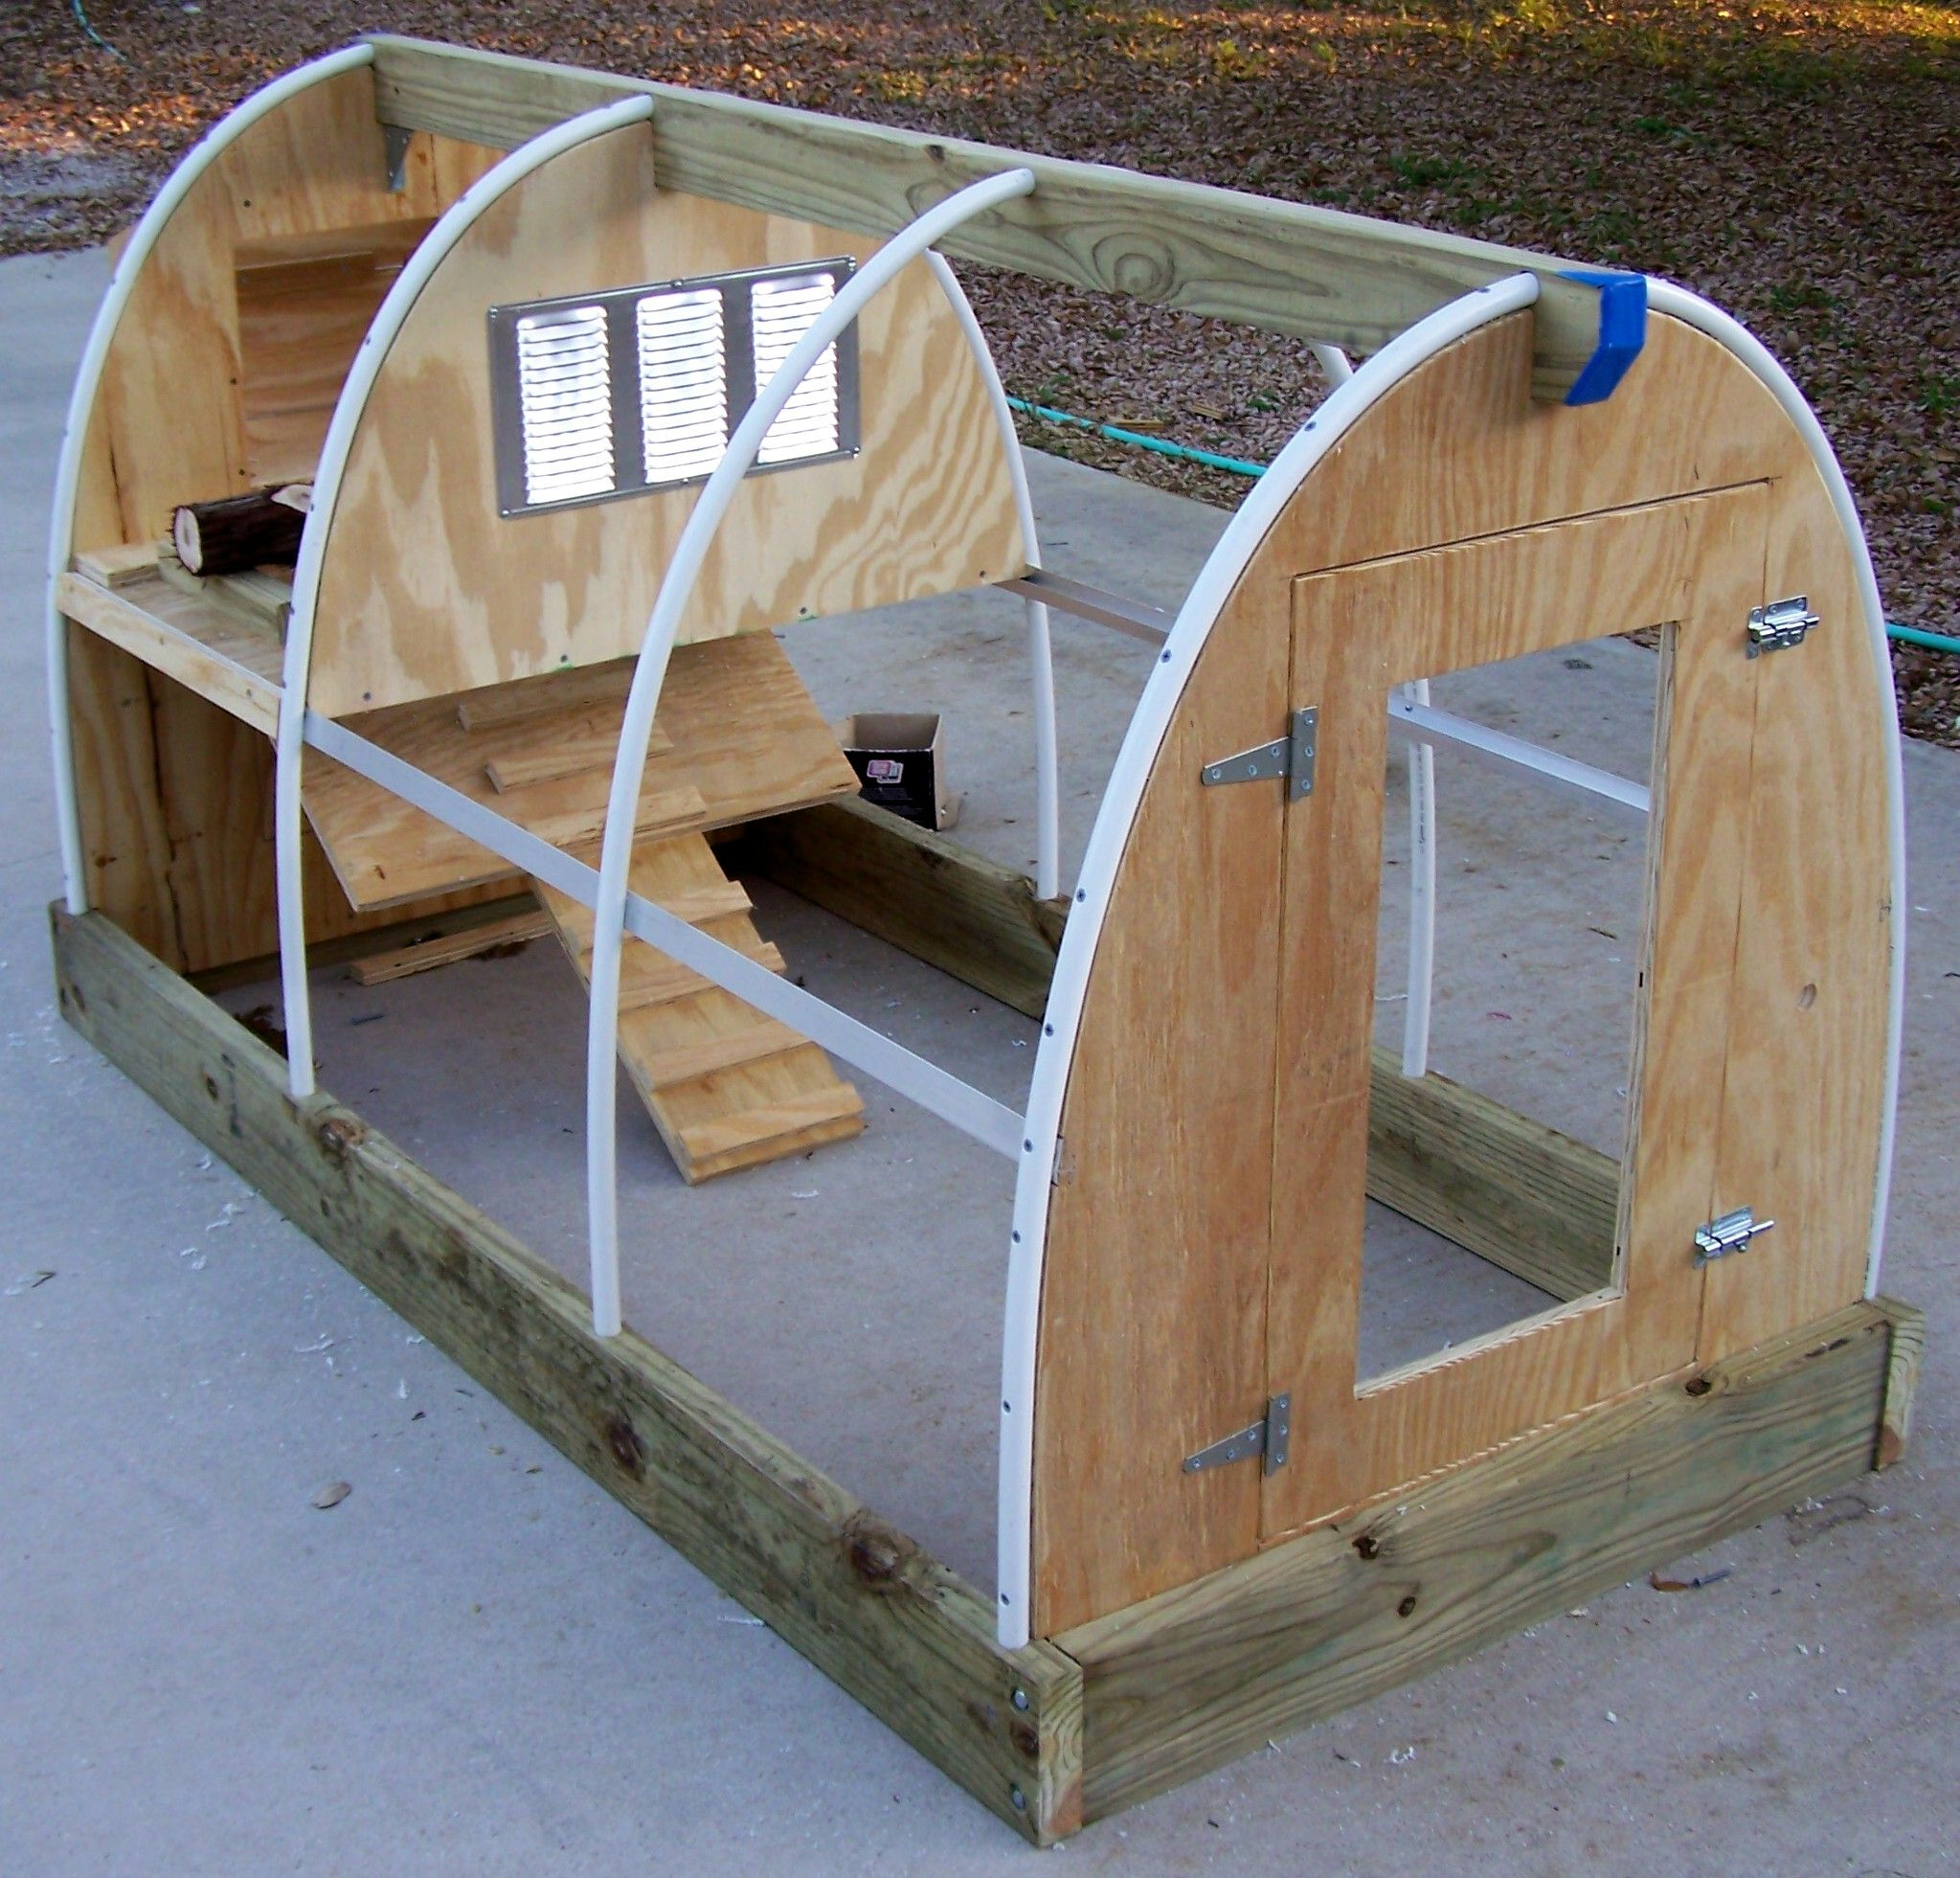 Diy chicken coops plans that are easy to build diy for Free coop plans